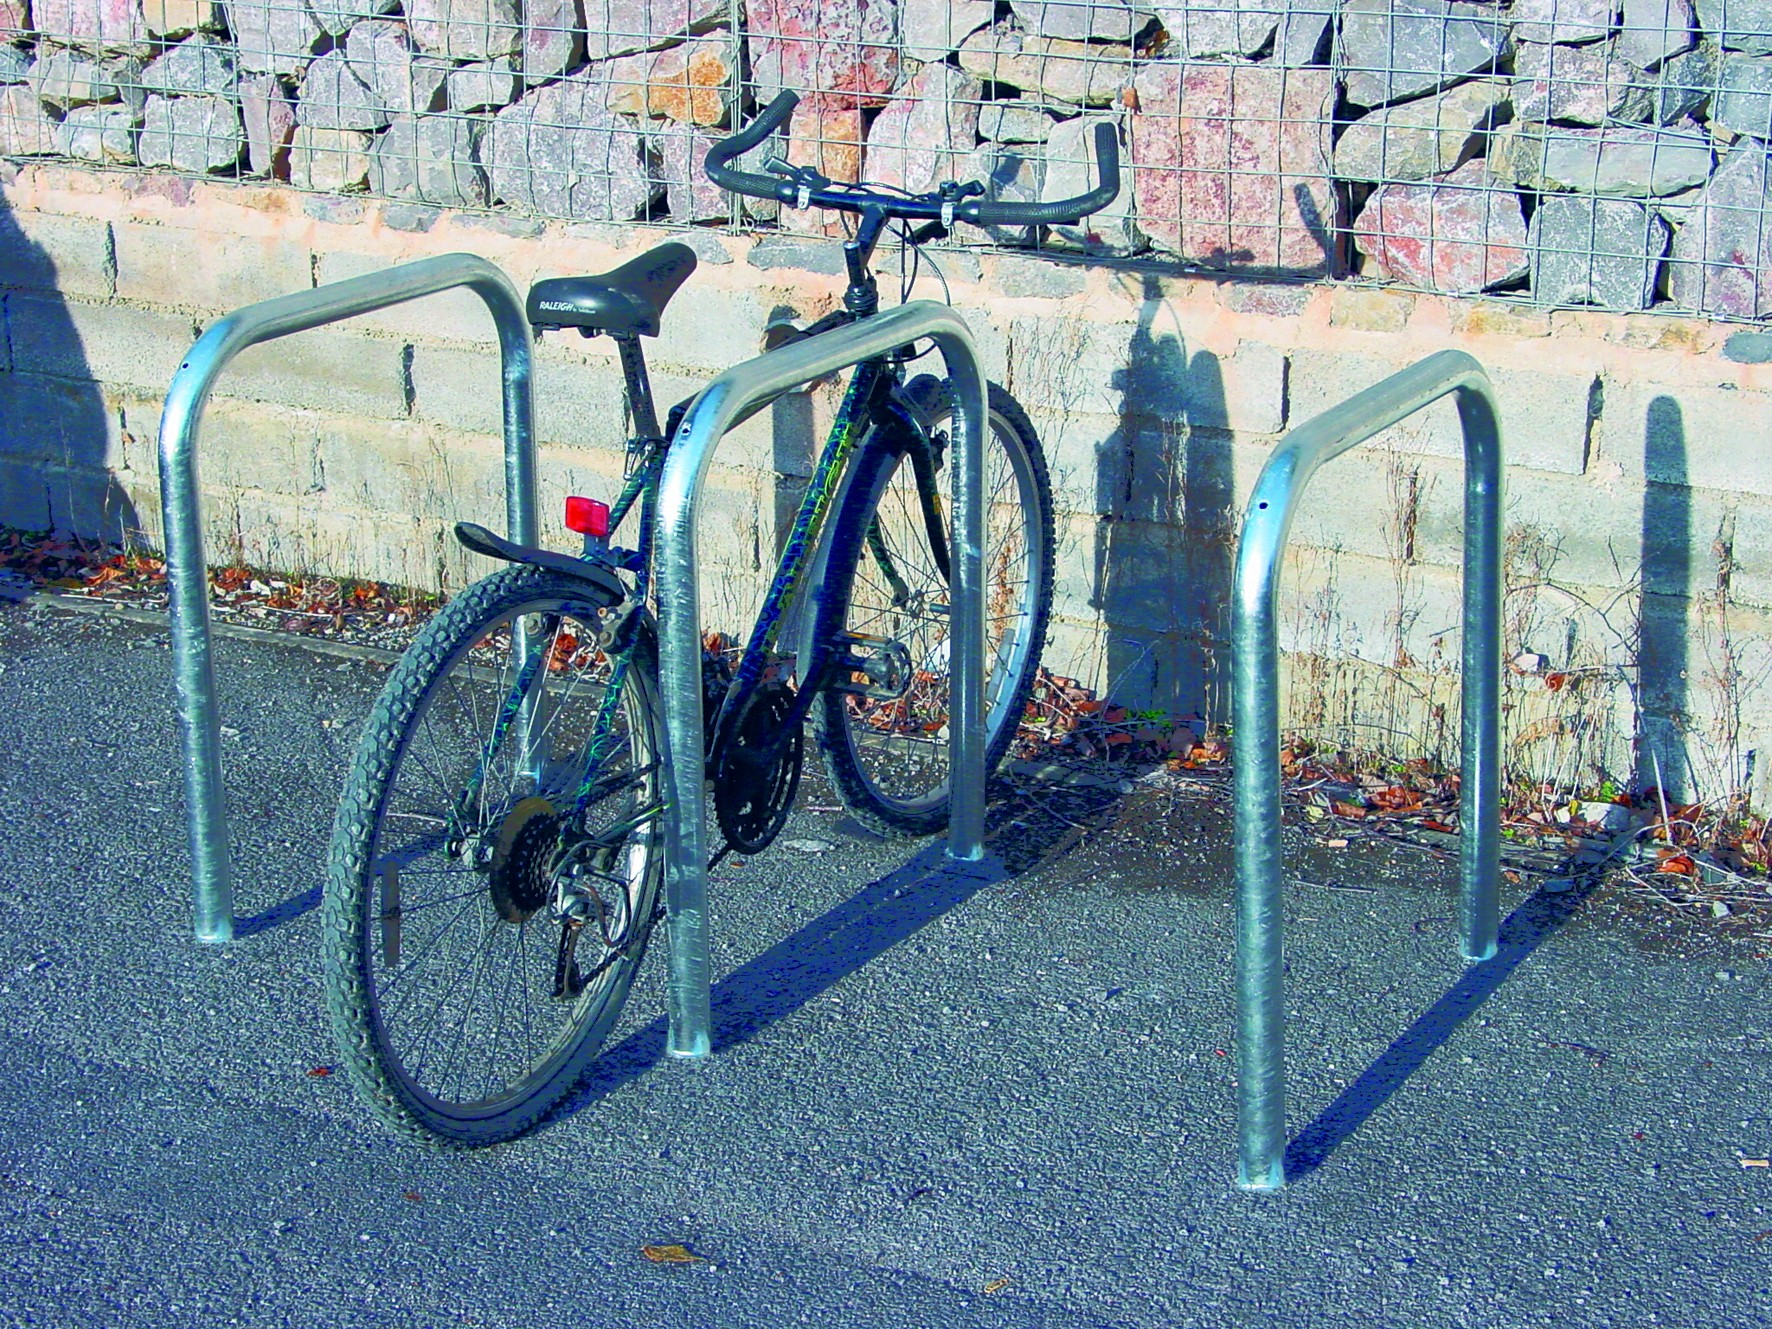 Sheffield Cycle Stands Built In